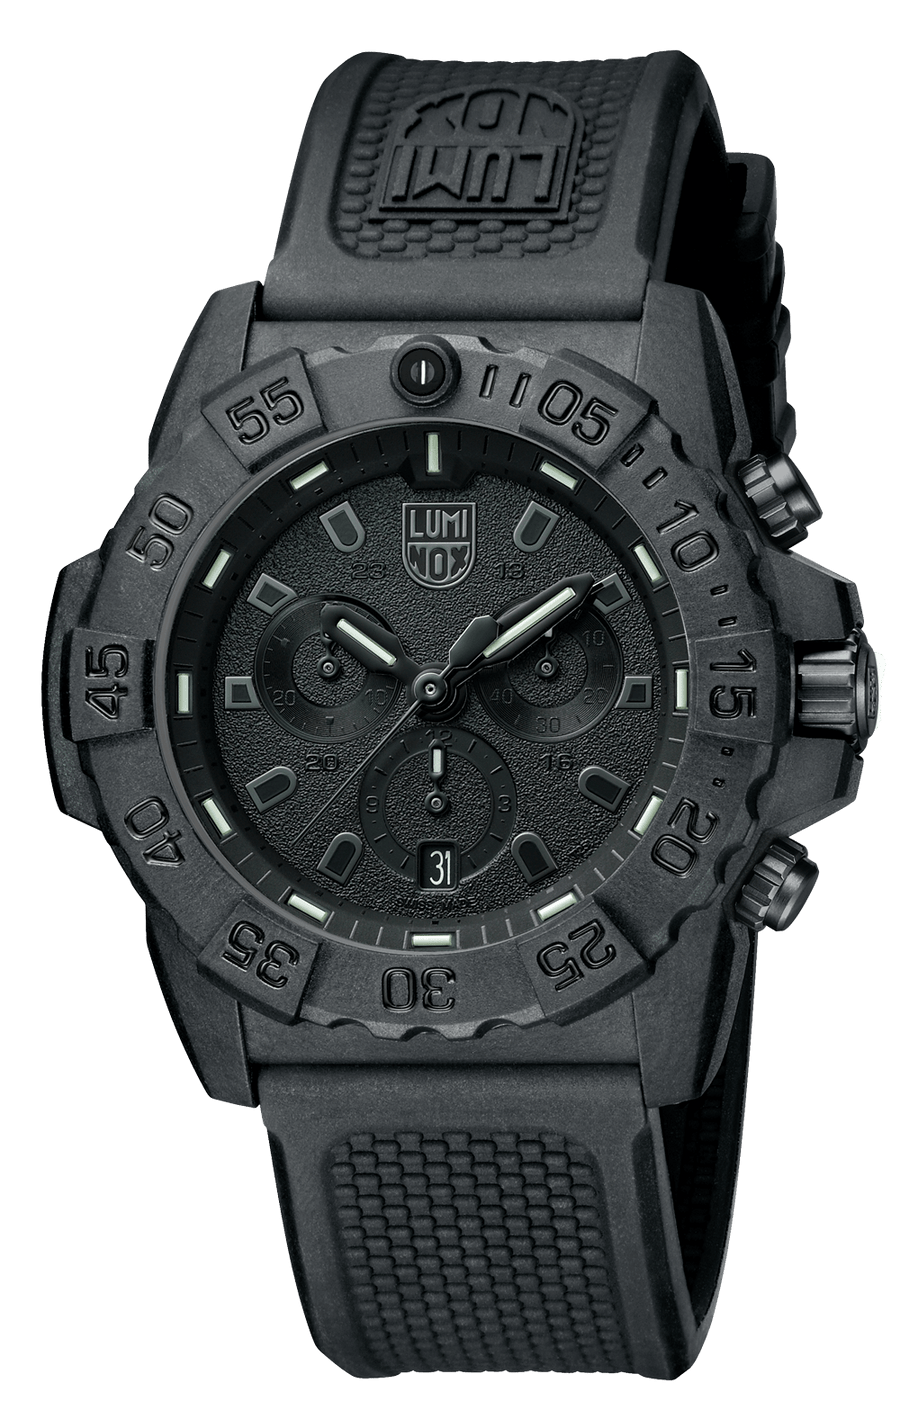 Navy SEAL Chronograph - 3581.BO